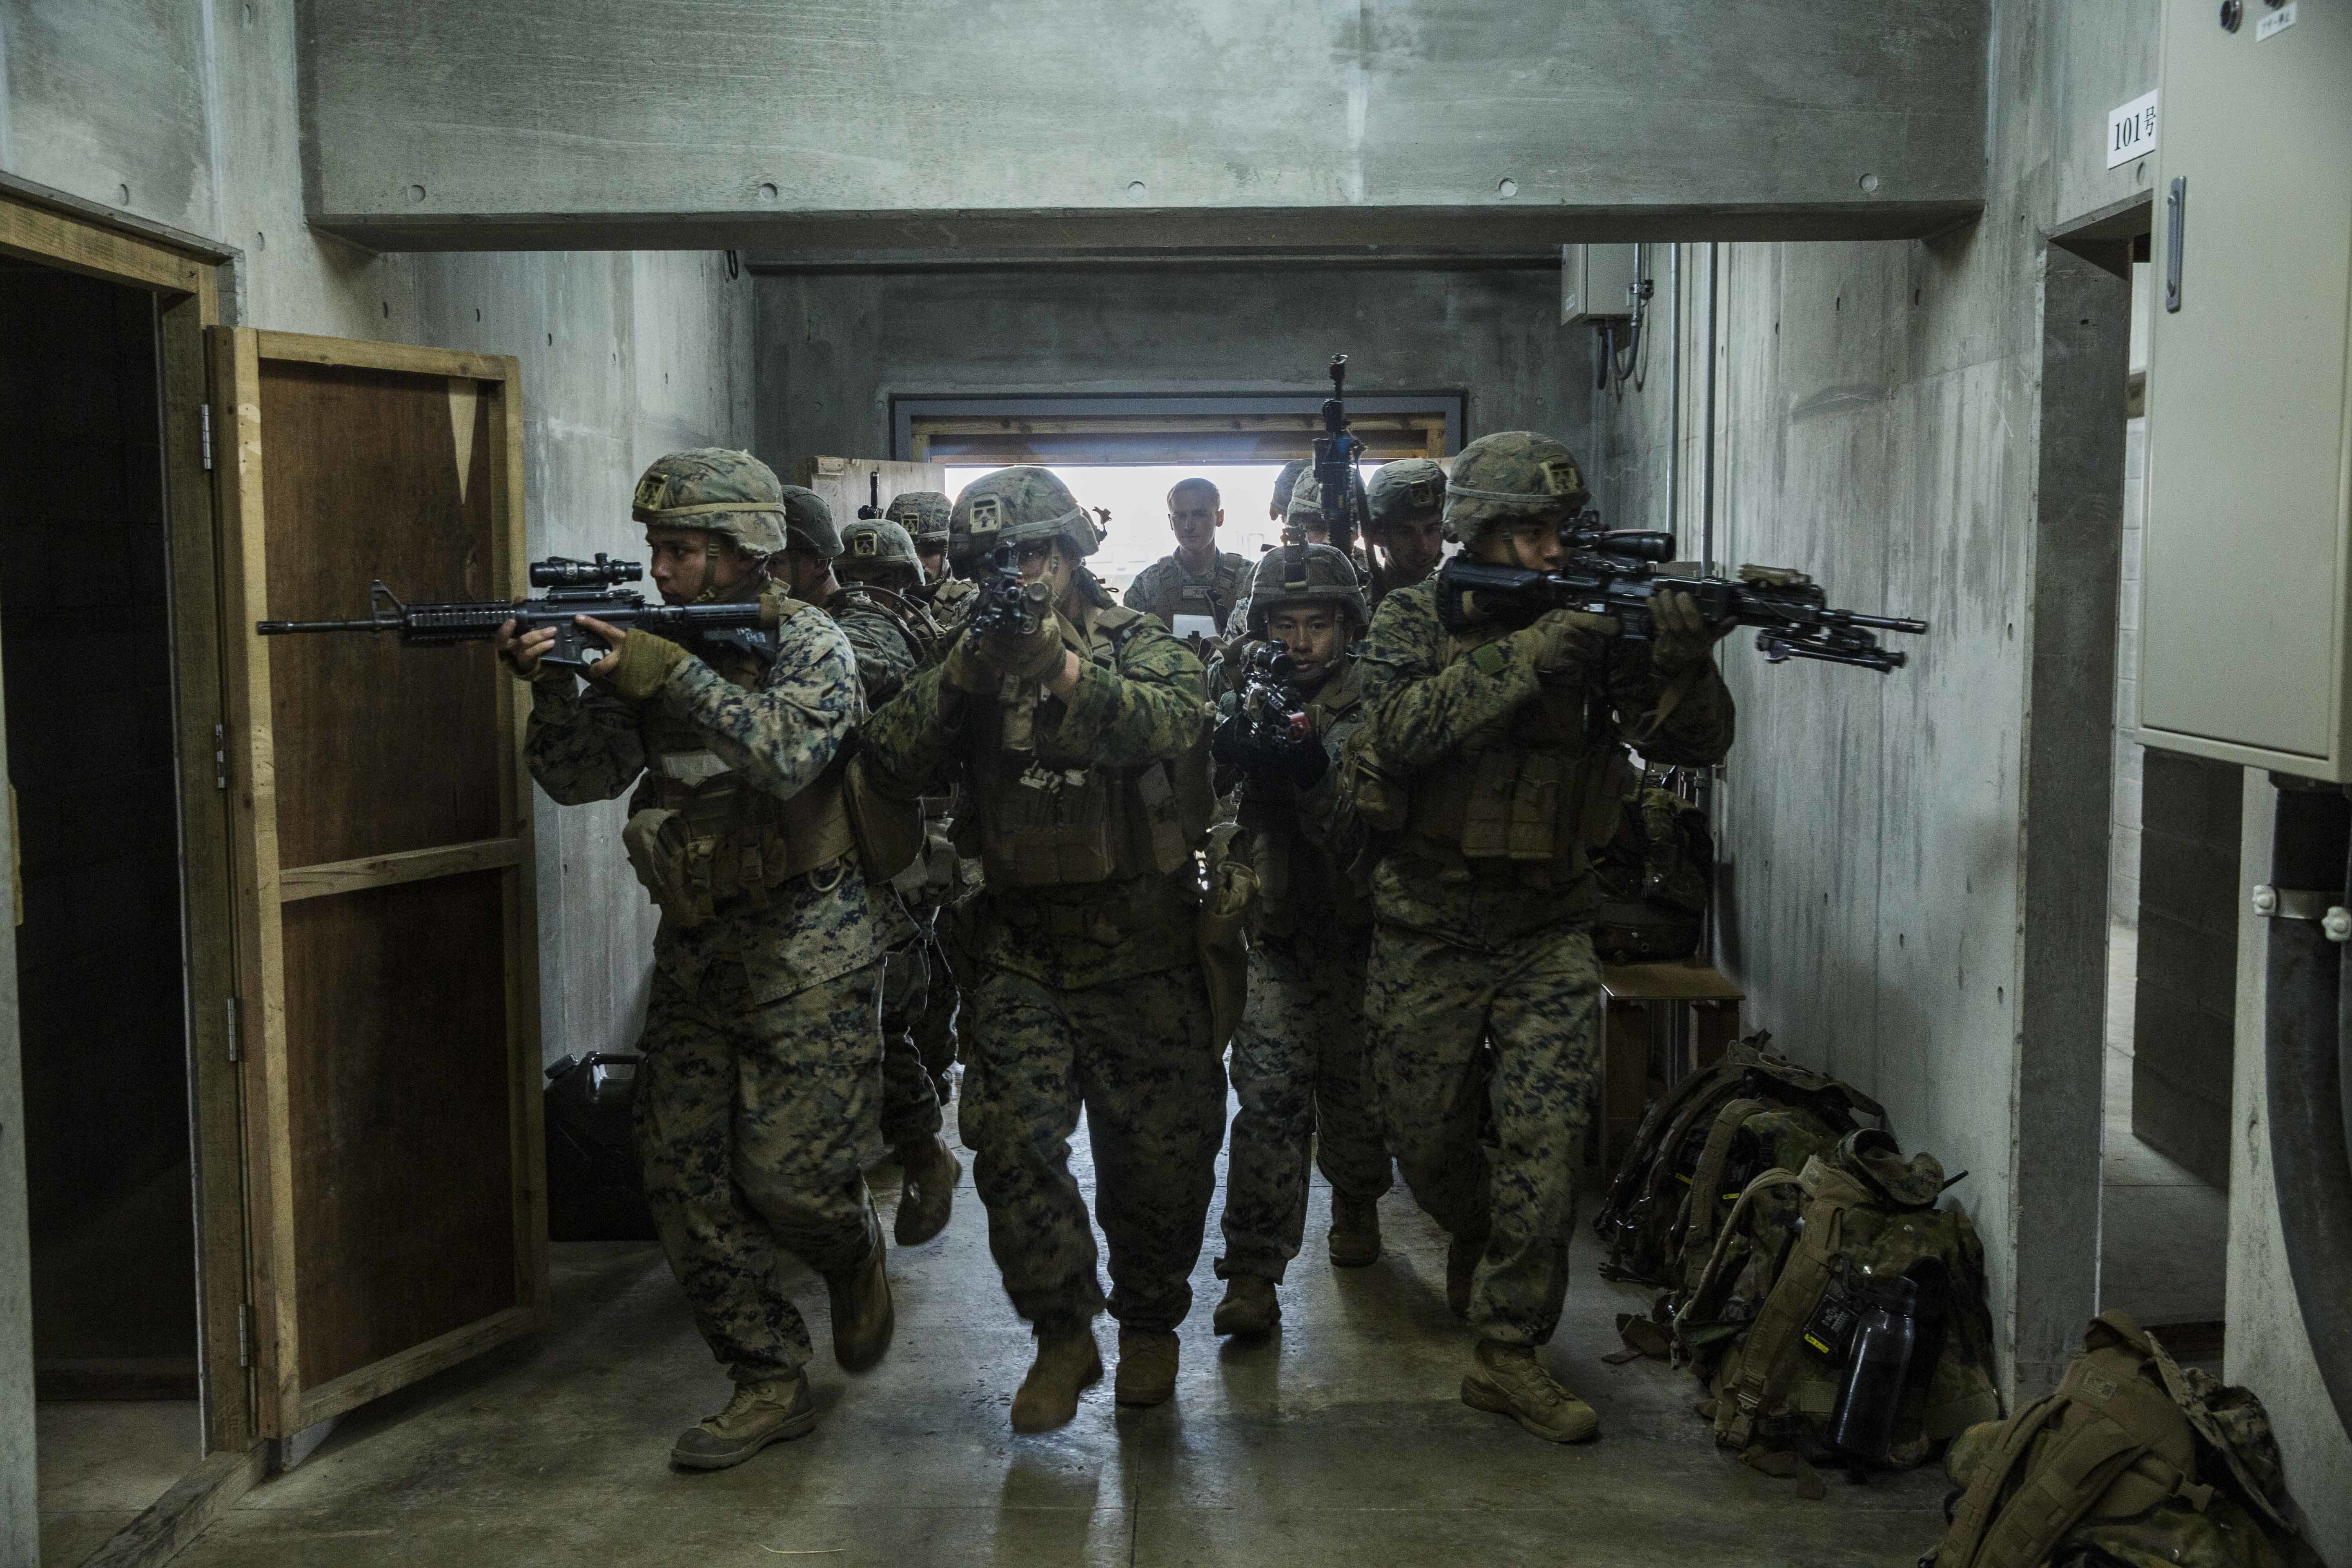 Marines show Japan Ground Self-Defense Force service members room-clearing techniques during Exercise Forest Light Western Army at Kirishima Maneuver Field, Kumamoto, Japan, Jan. 27, 2020. (Sgt. Audrey M. C. Rampton/Marine Corps)